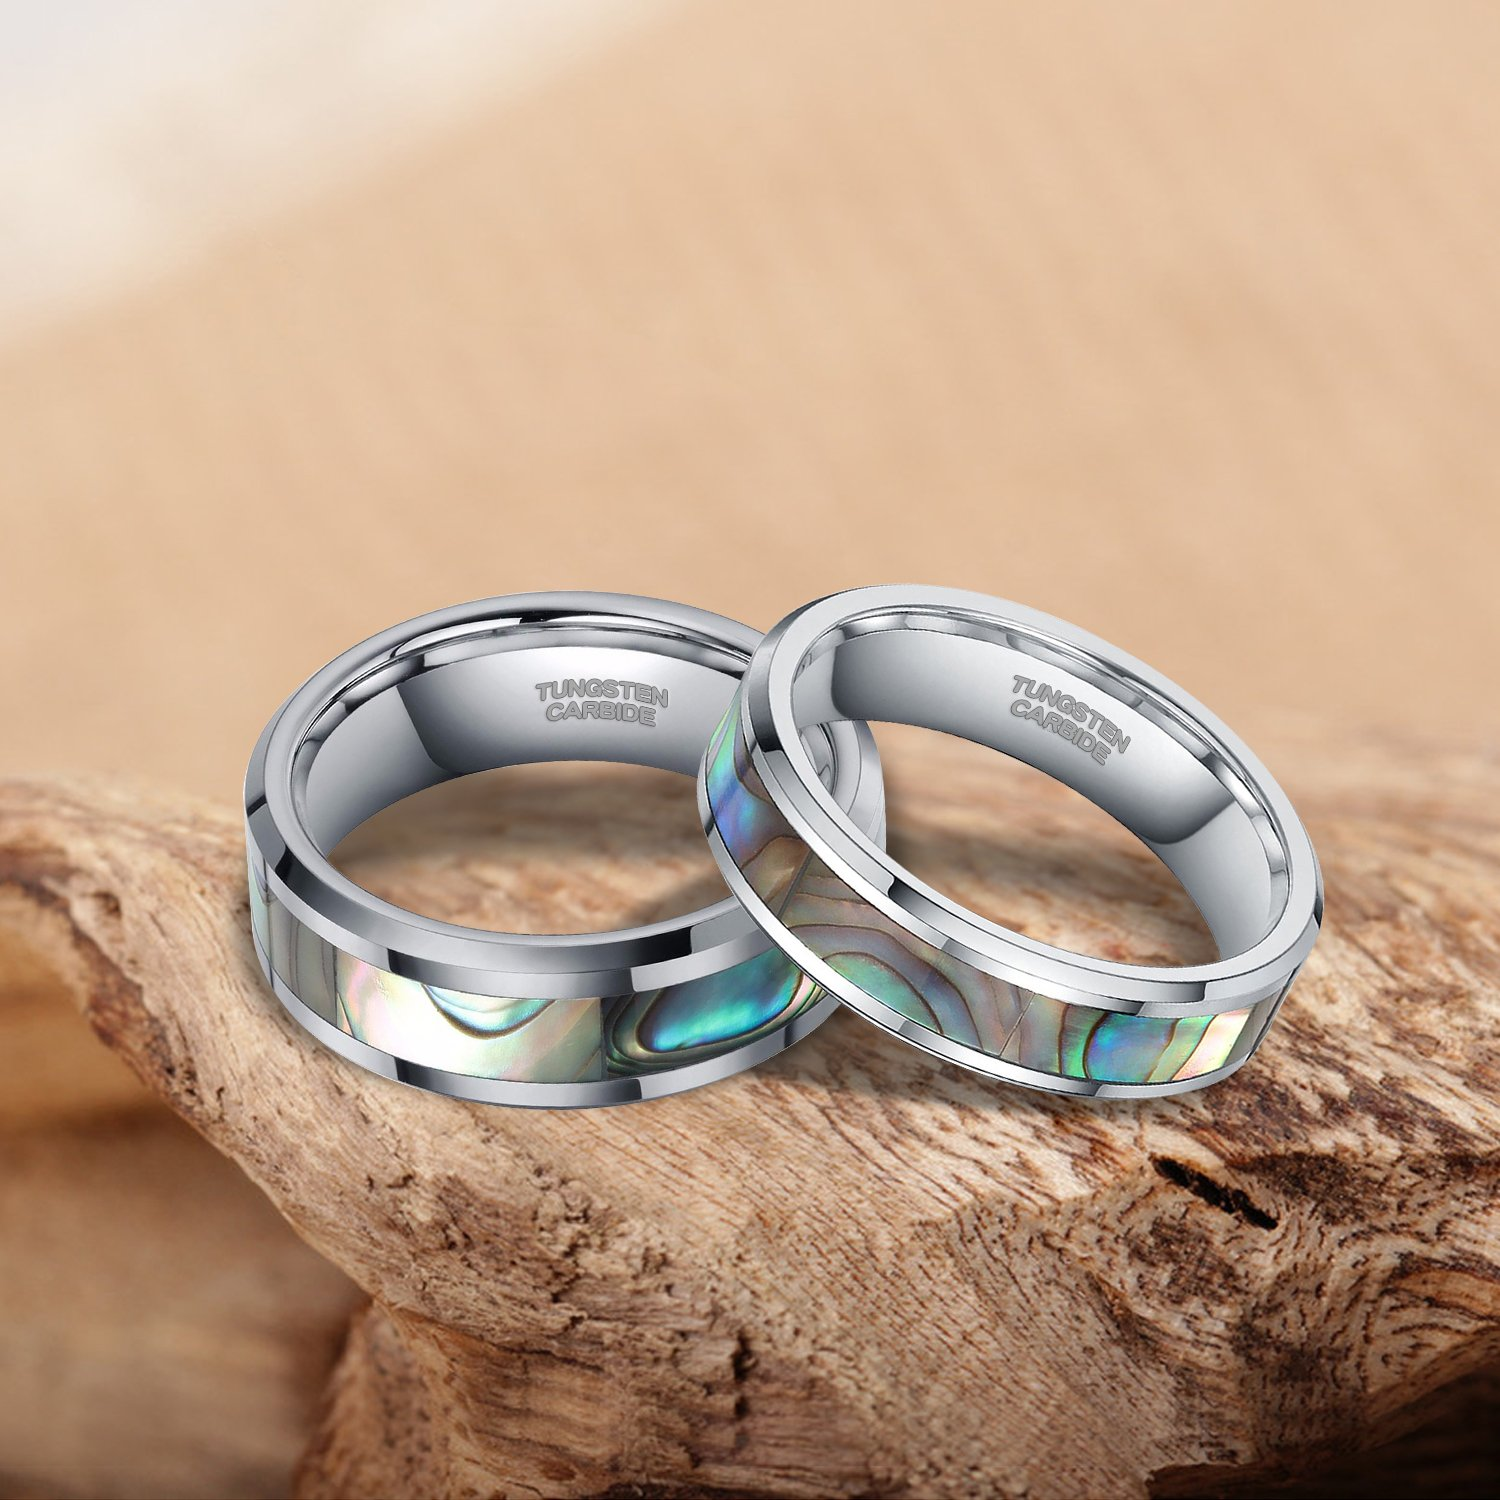 8mm Abalone Shell Tungsten Rings Comfort Fit Mother of Peal Men Women Wedding Band Size 9.5 by Shuremaster (Image #2)